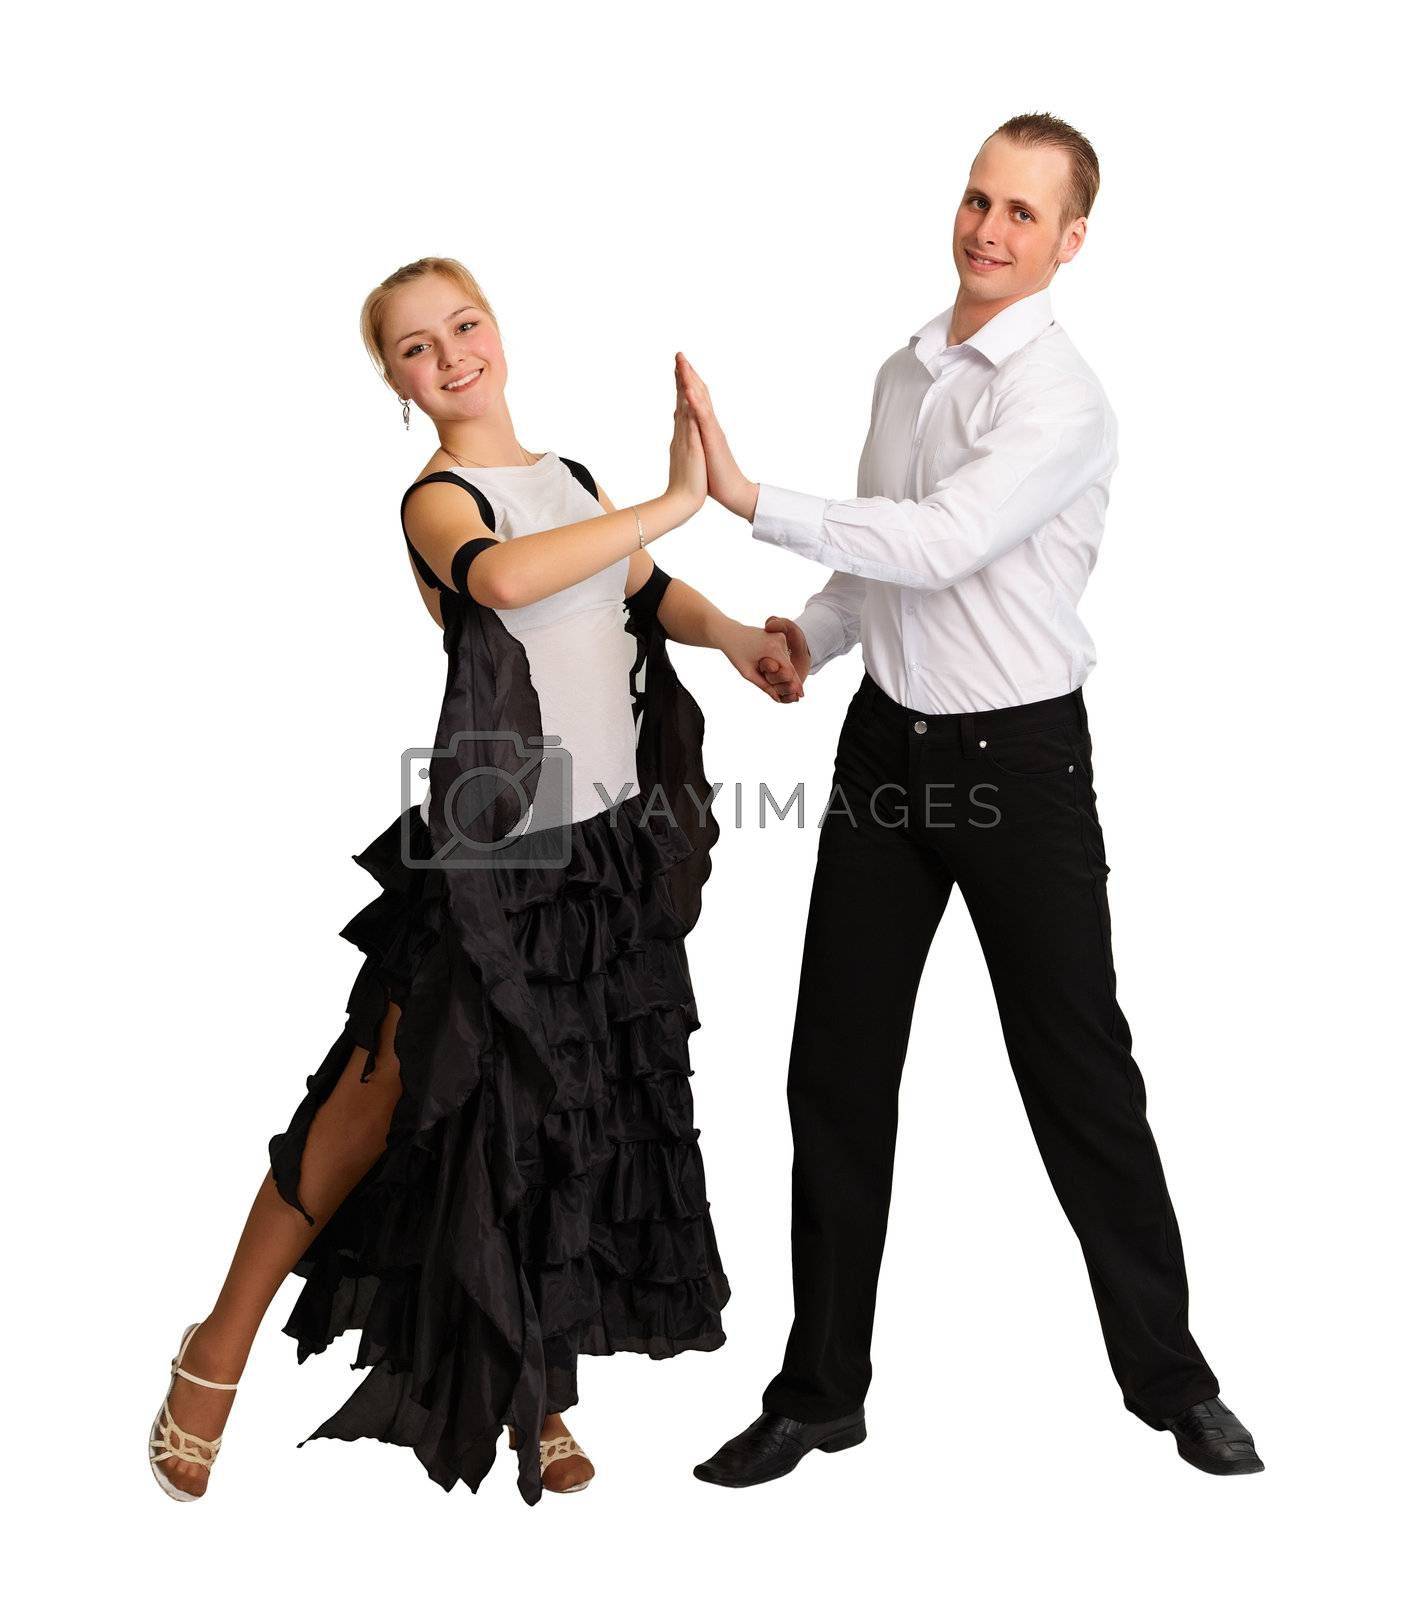 Young couple performs ballroom dance isolated on white background